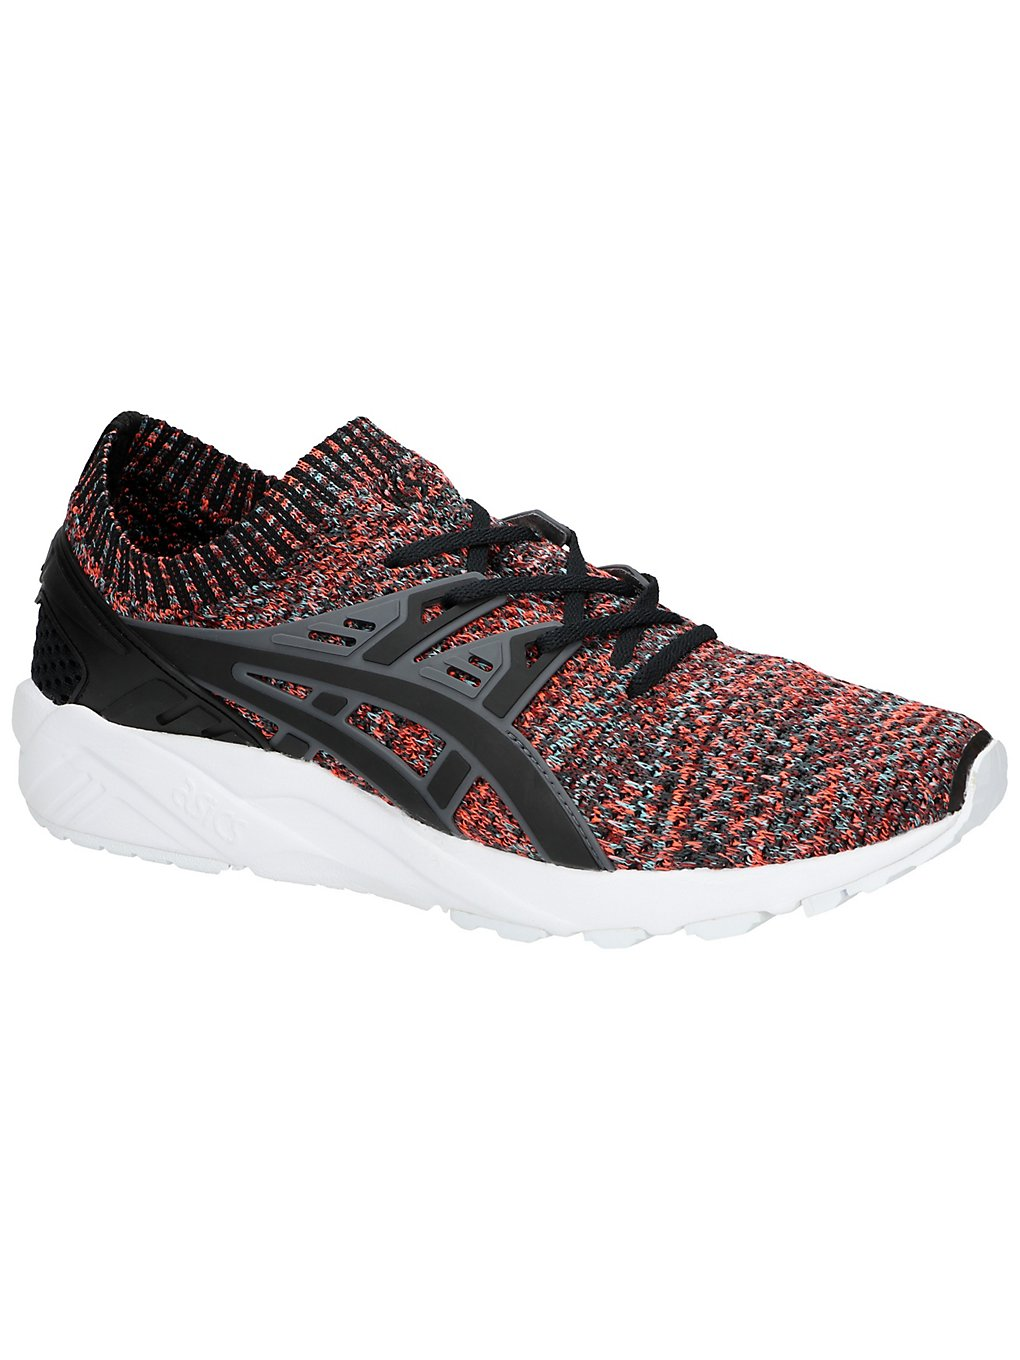 Image of Asics Gel-Kayano Trainer Knit Sneakers